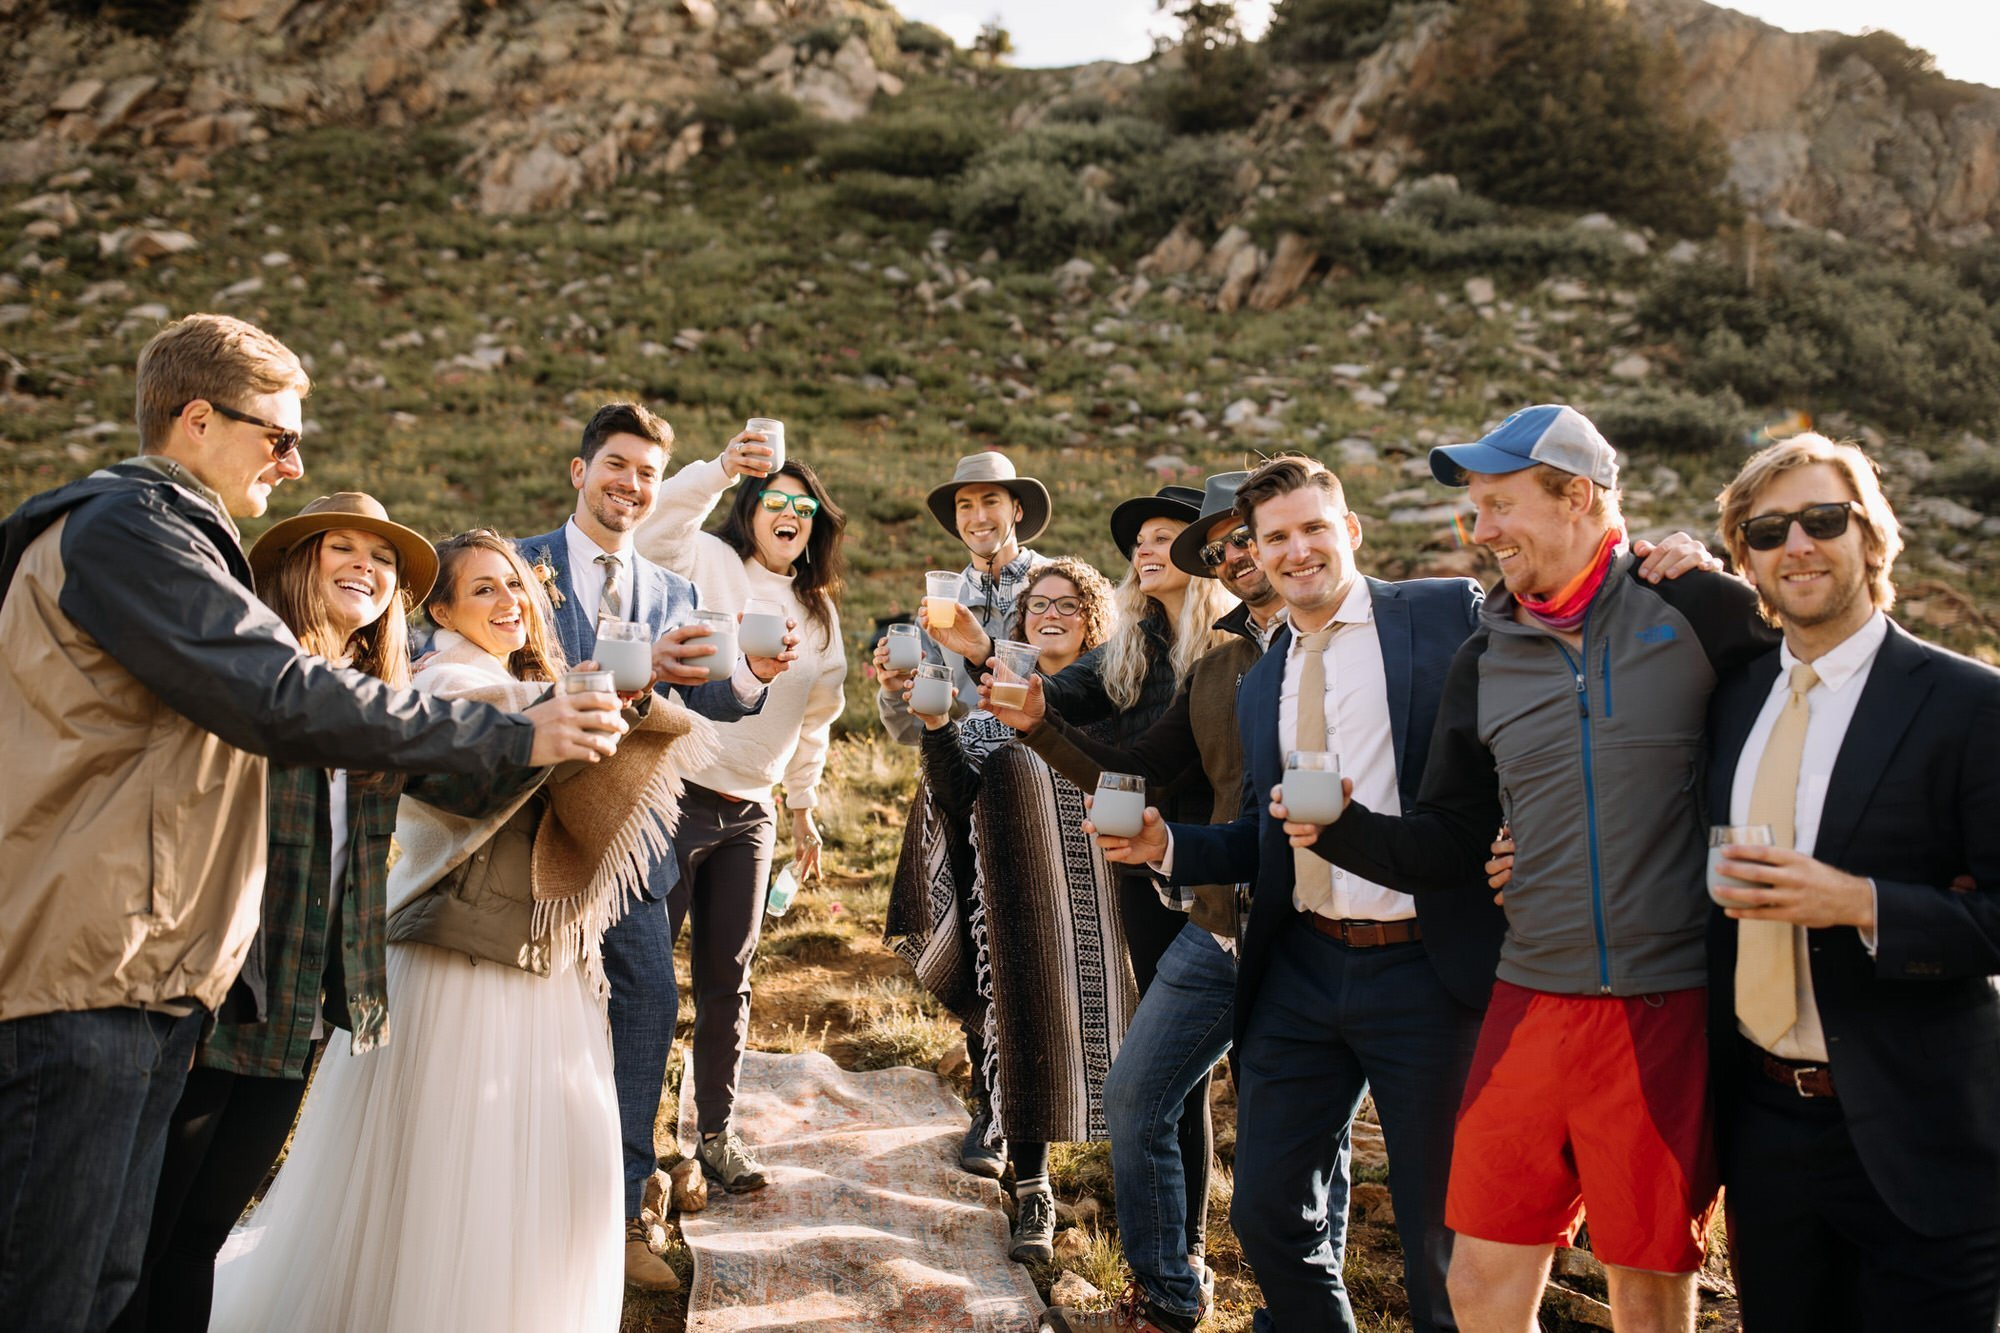 bride and groom sharing a picnic with family and friends after wedding ceremony in Telluride